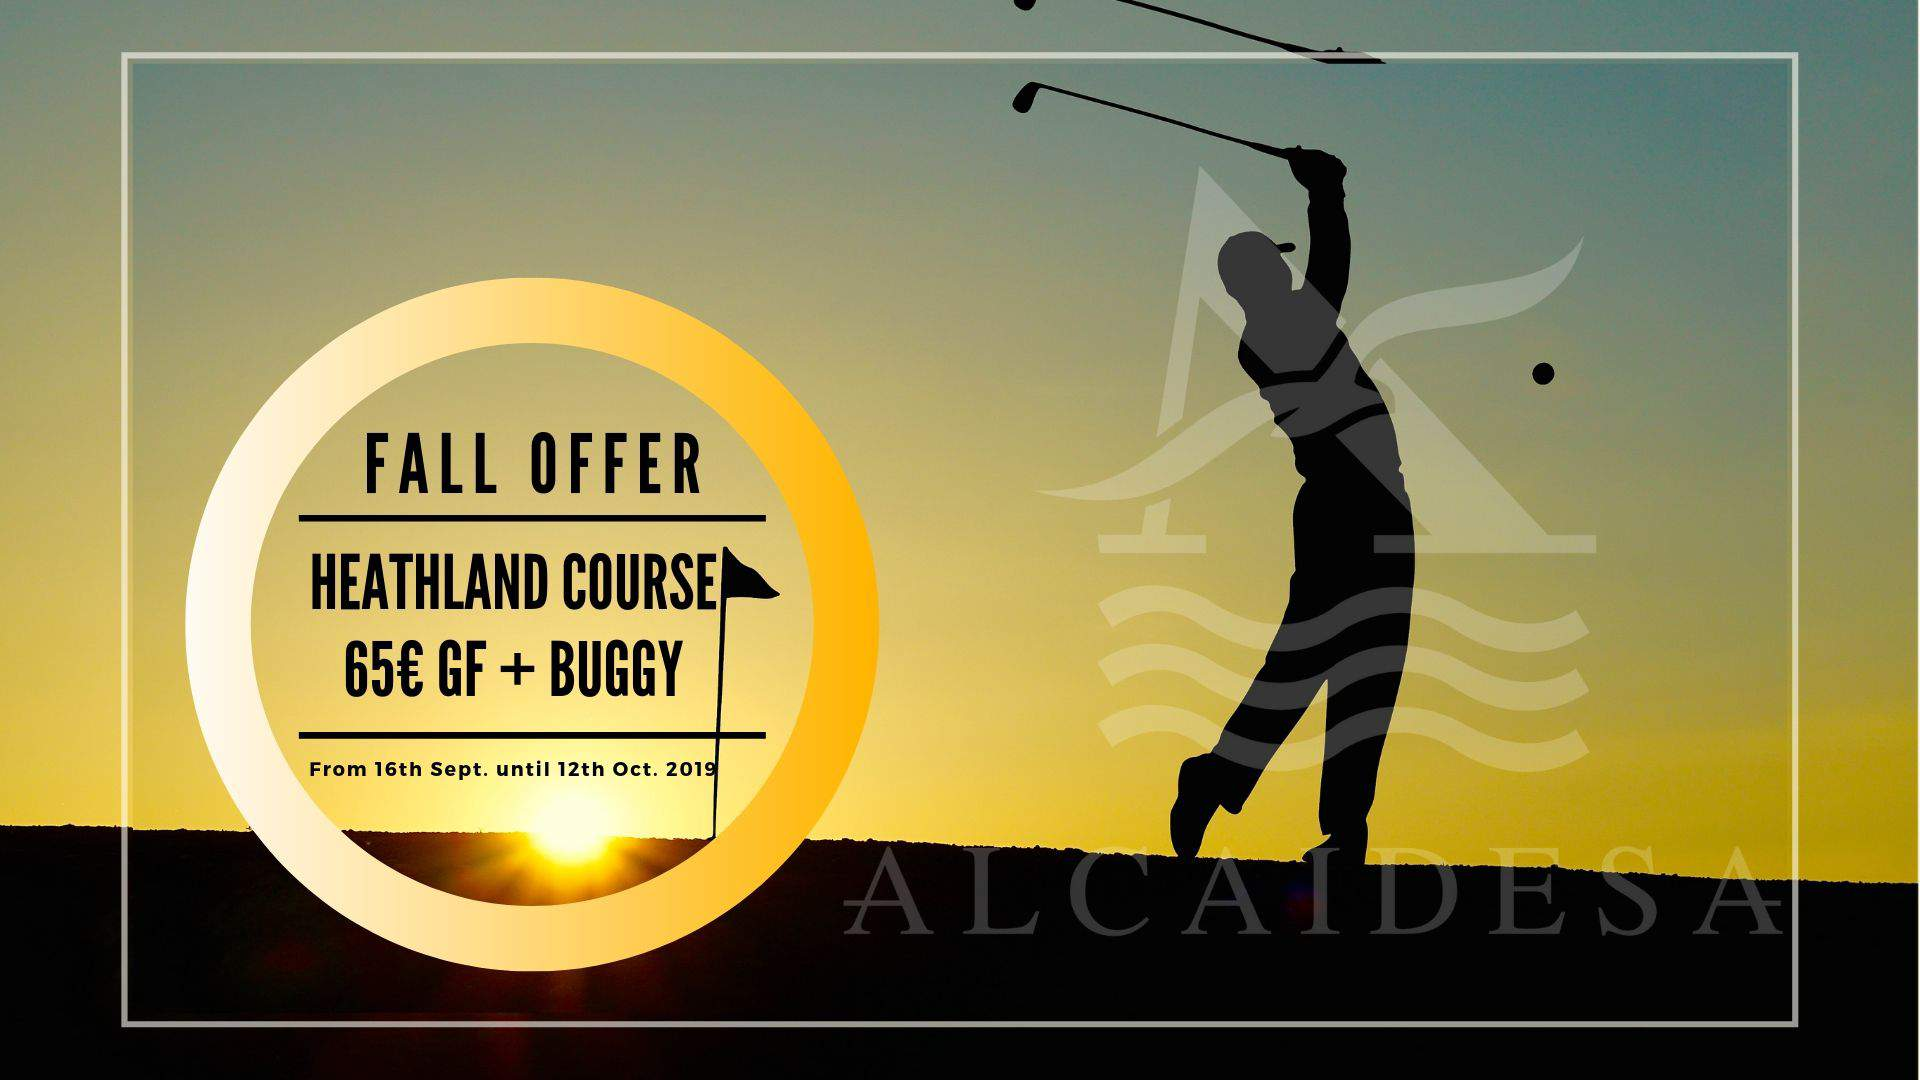 image FALL OFFER HEATHLAND